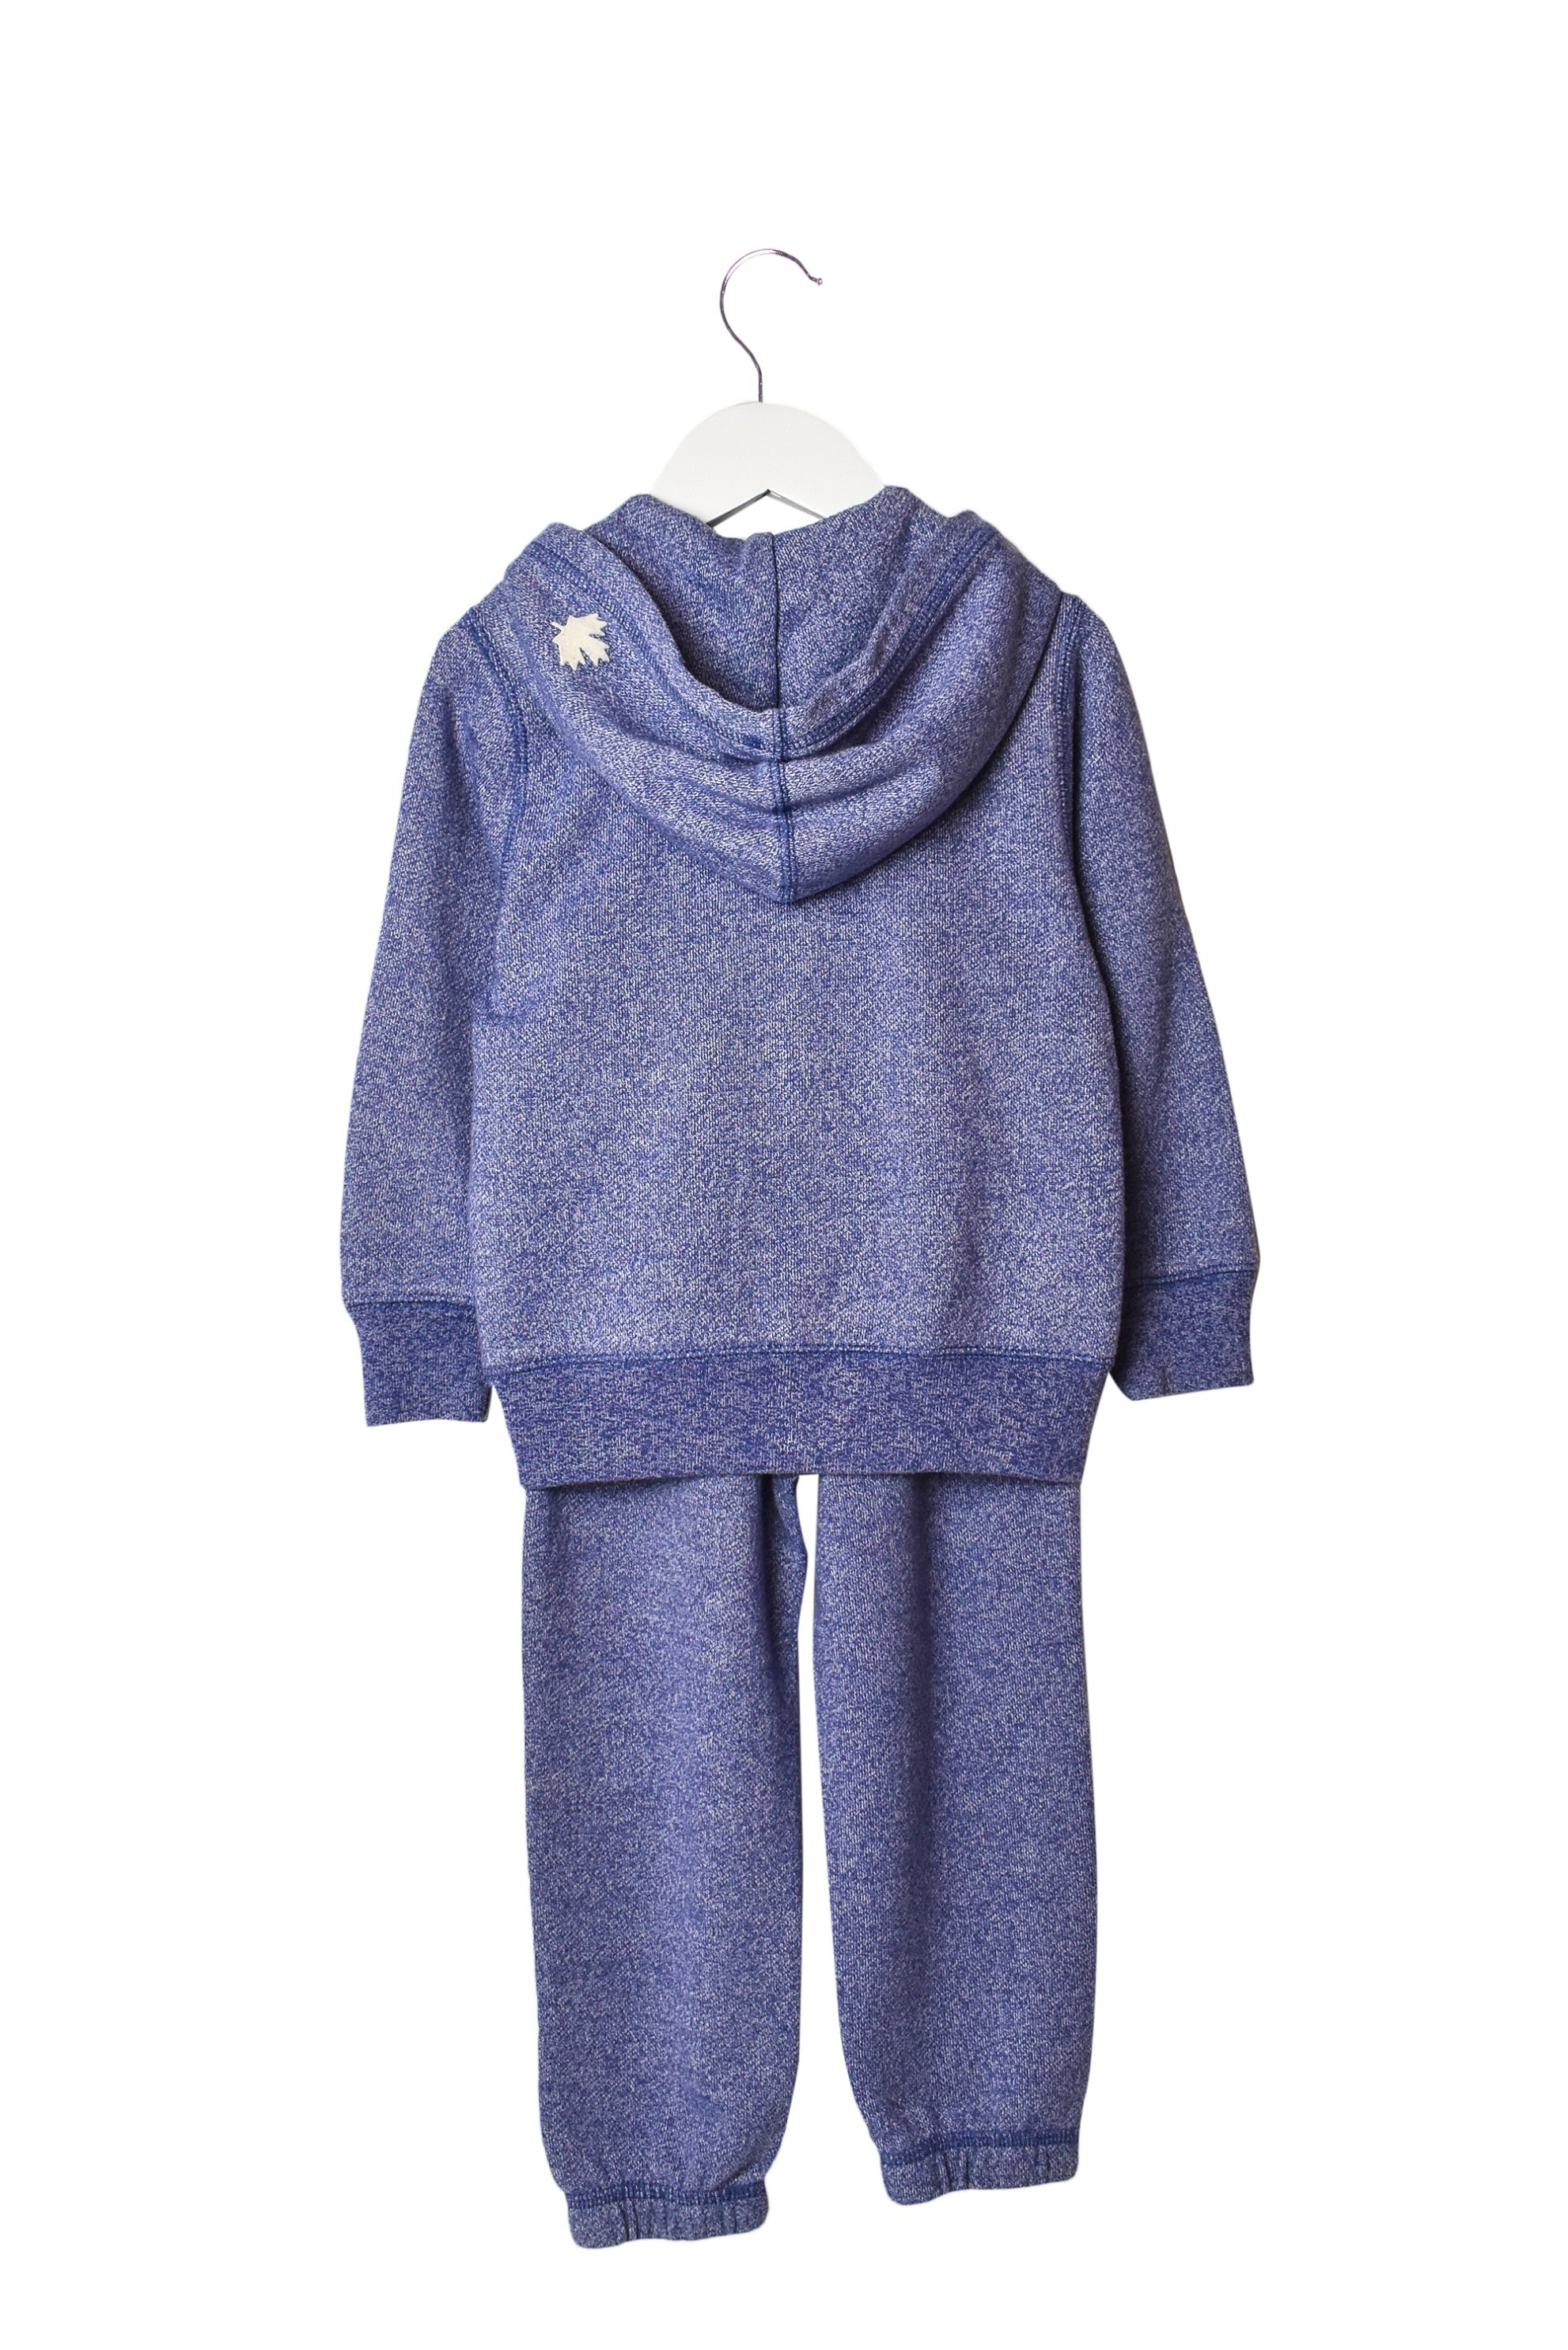 10007897 Roots Kids~ Sweatshirt and Pants 3T at Retykle